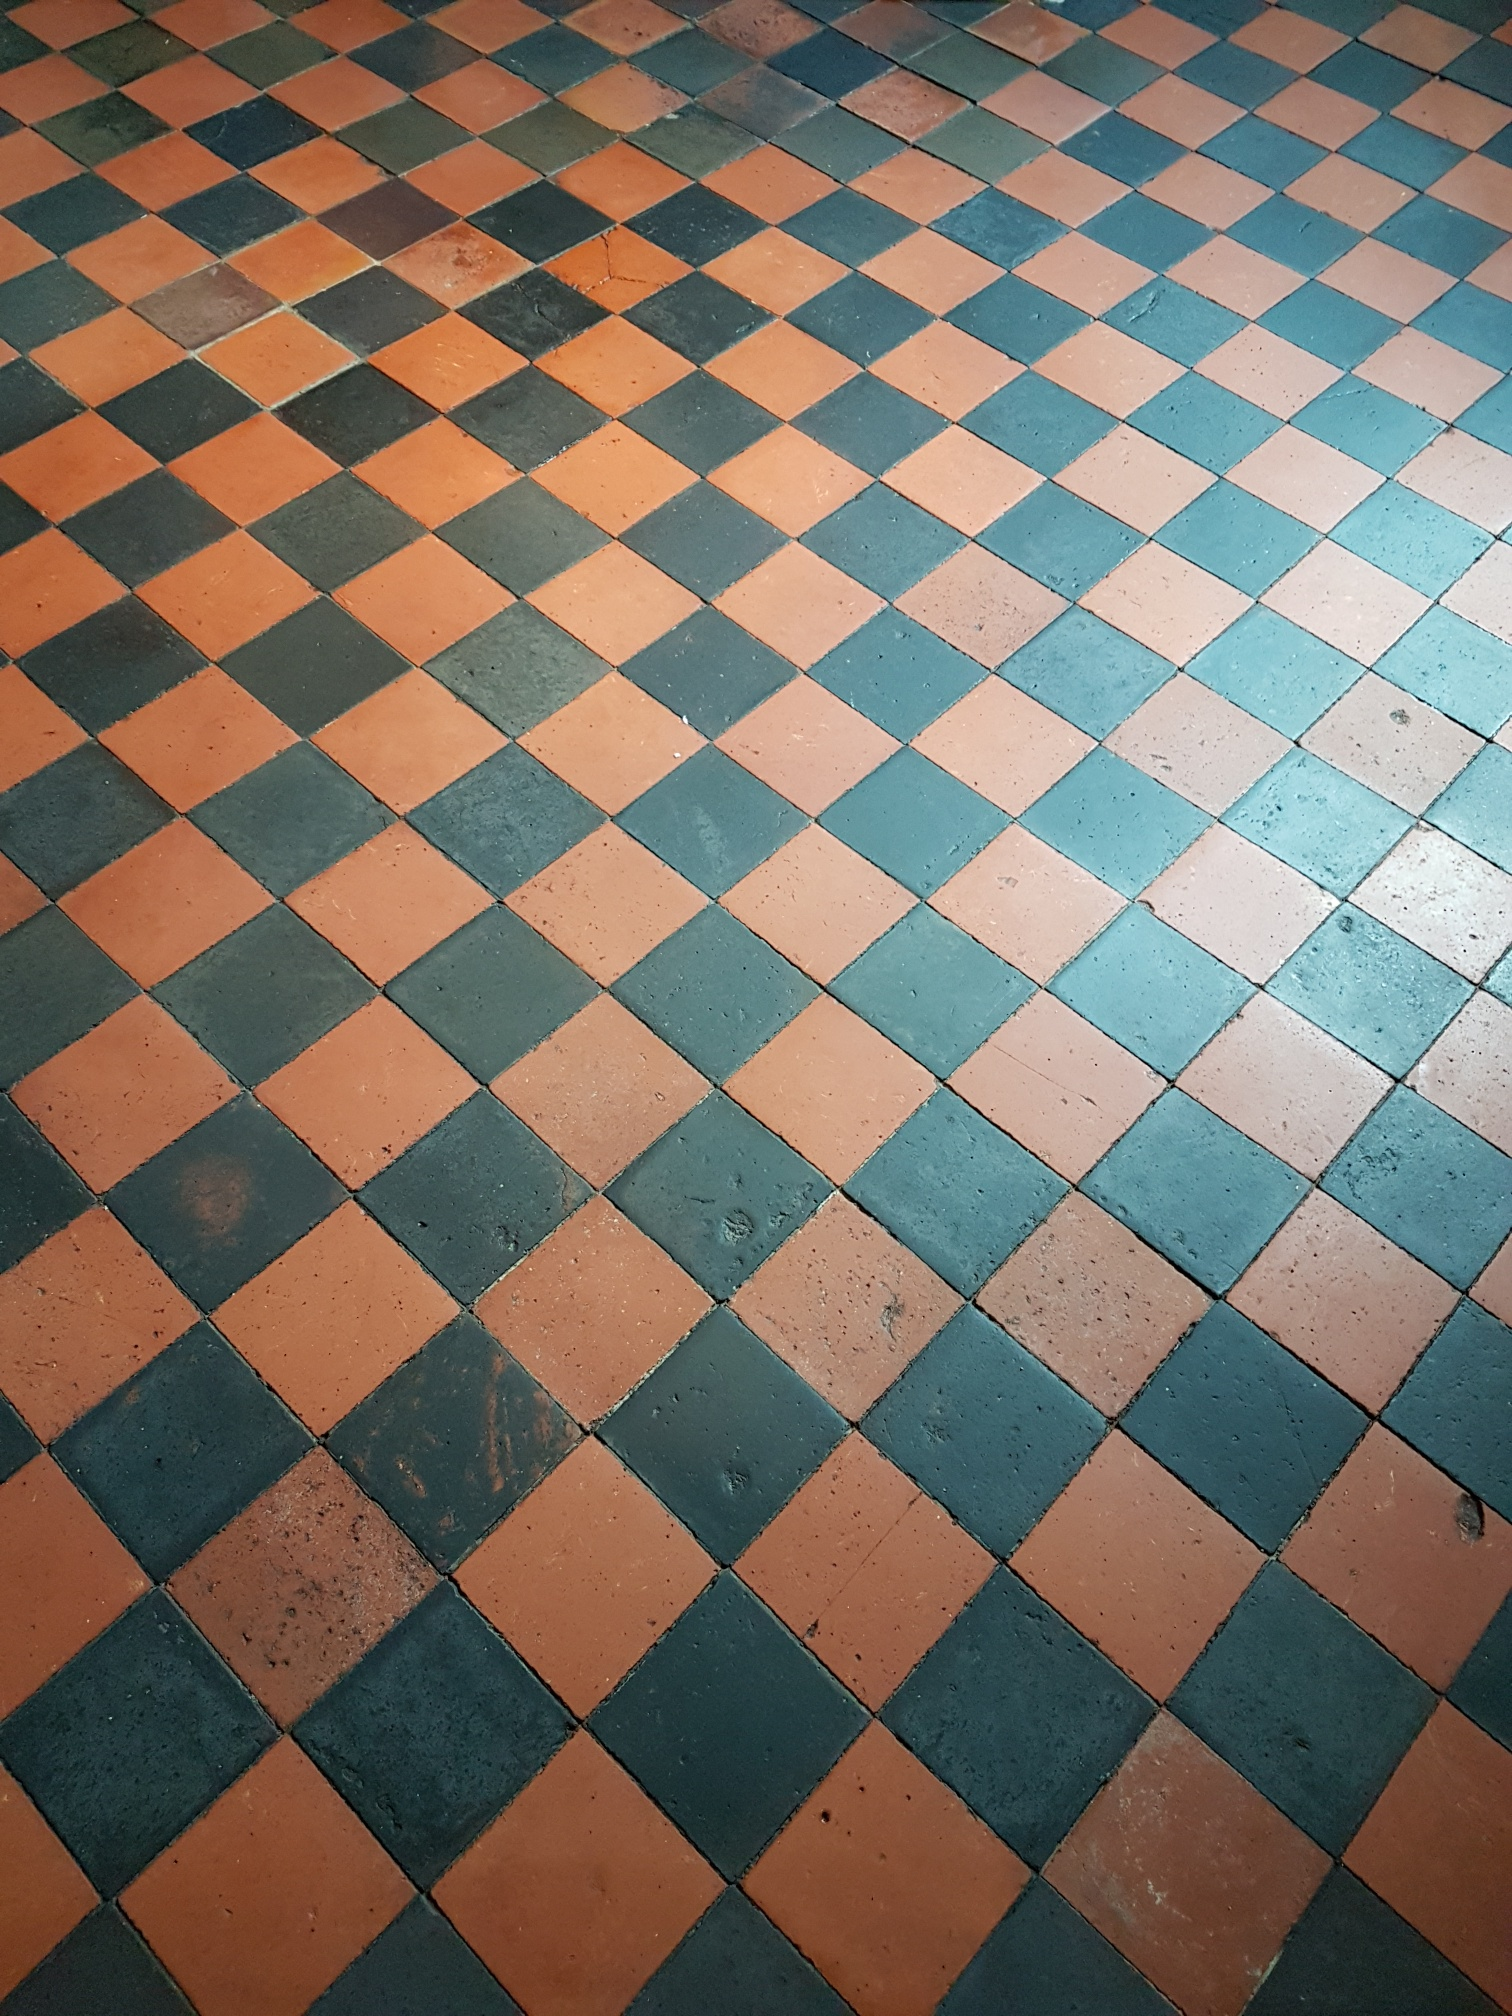 Quarry Tiled Floor After Cleaning Knaresbrorough